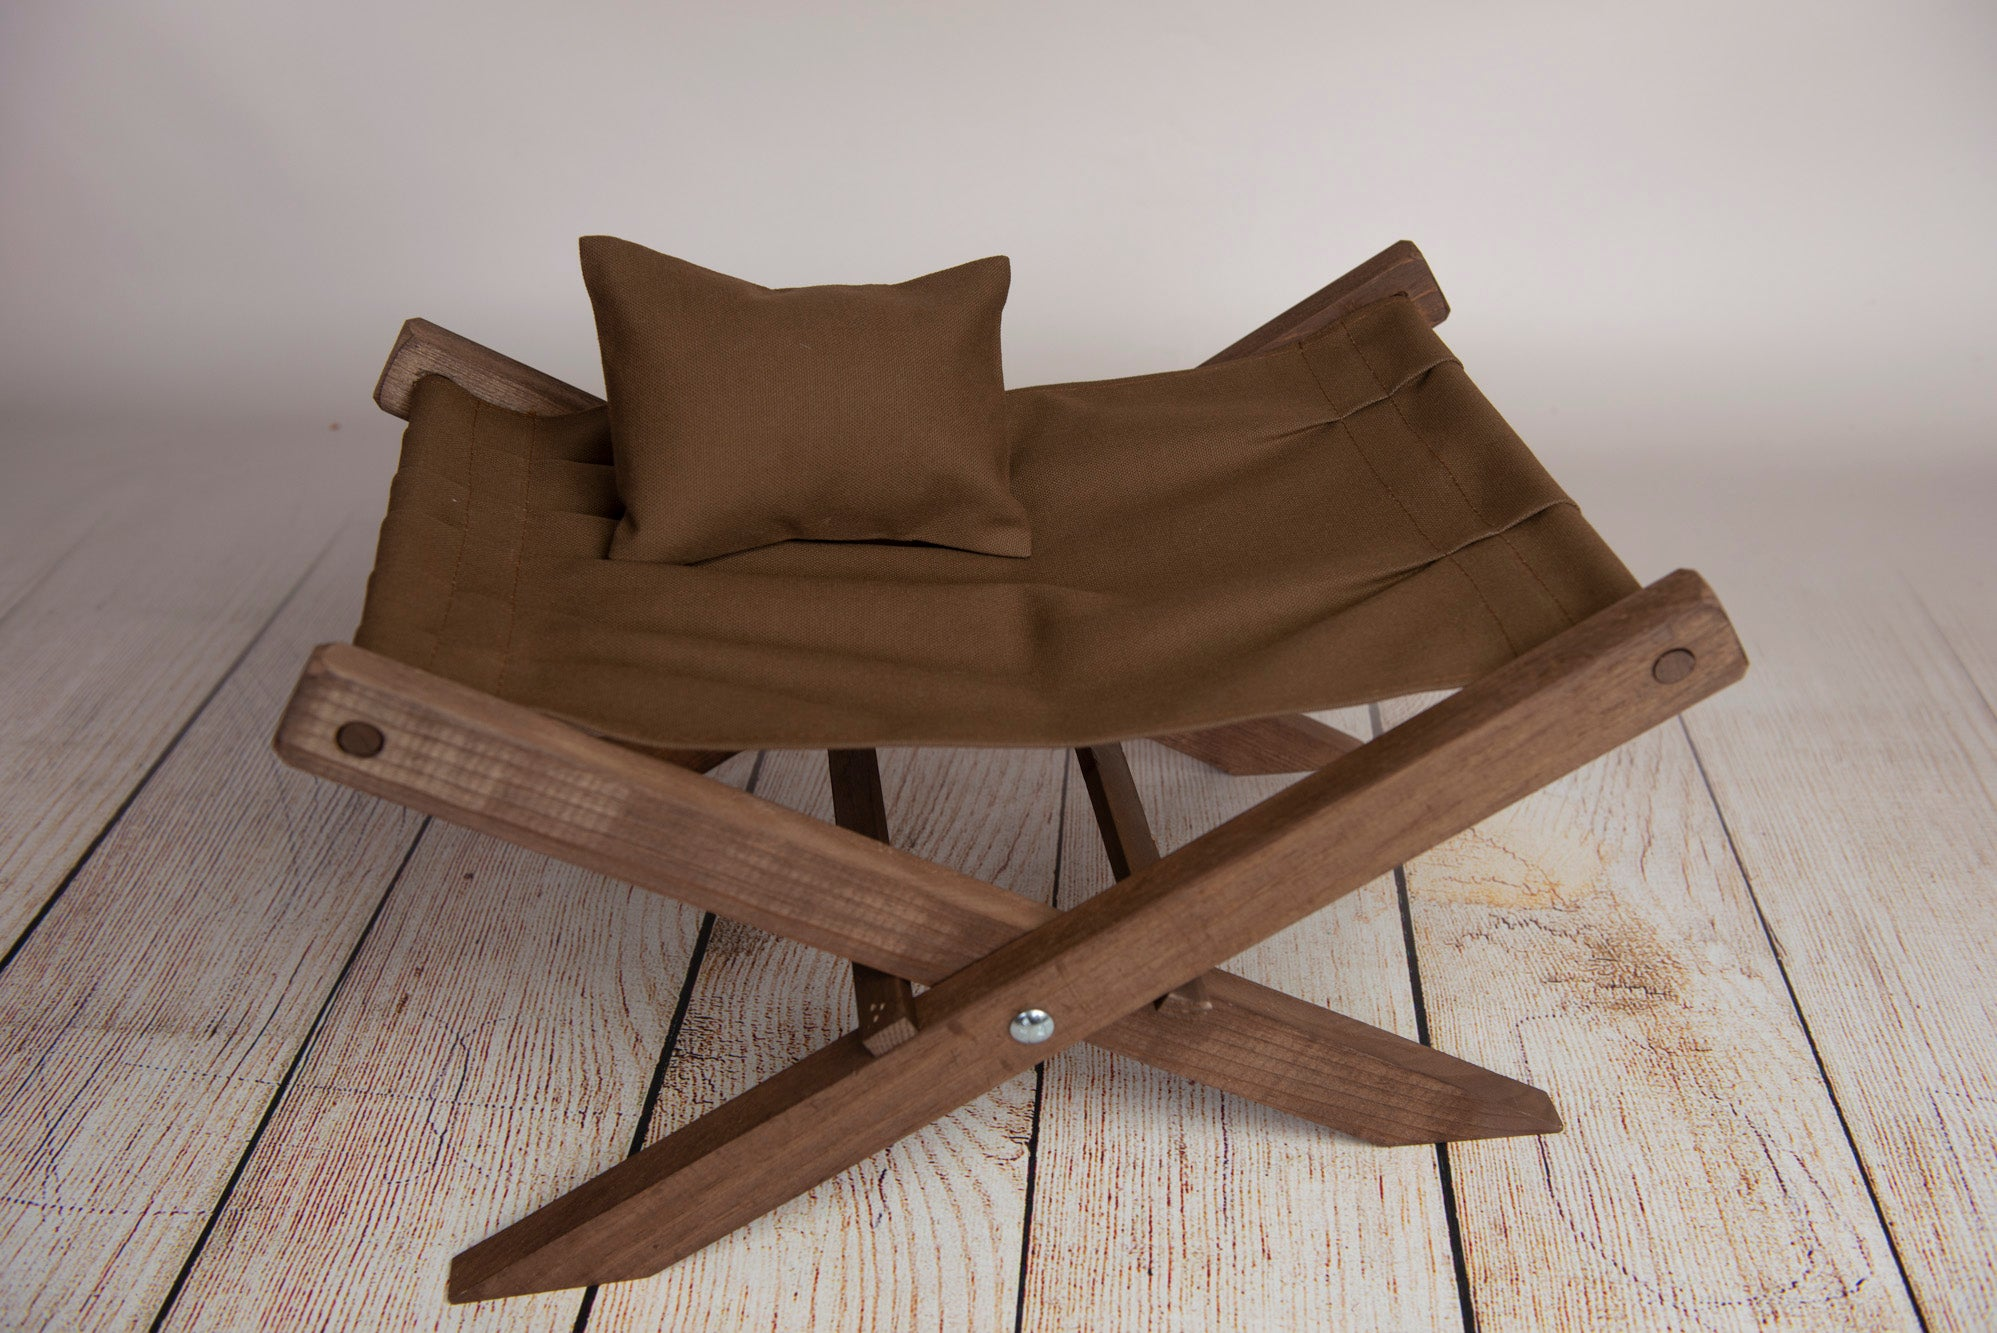 Rustic Deck Chair with Interchangeable Canvas AND Matching Pillow - Brown (DISCONTINUED)